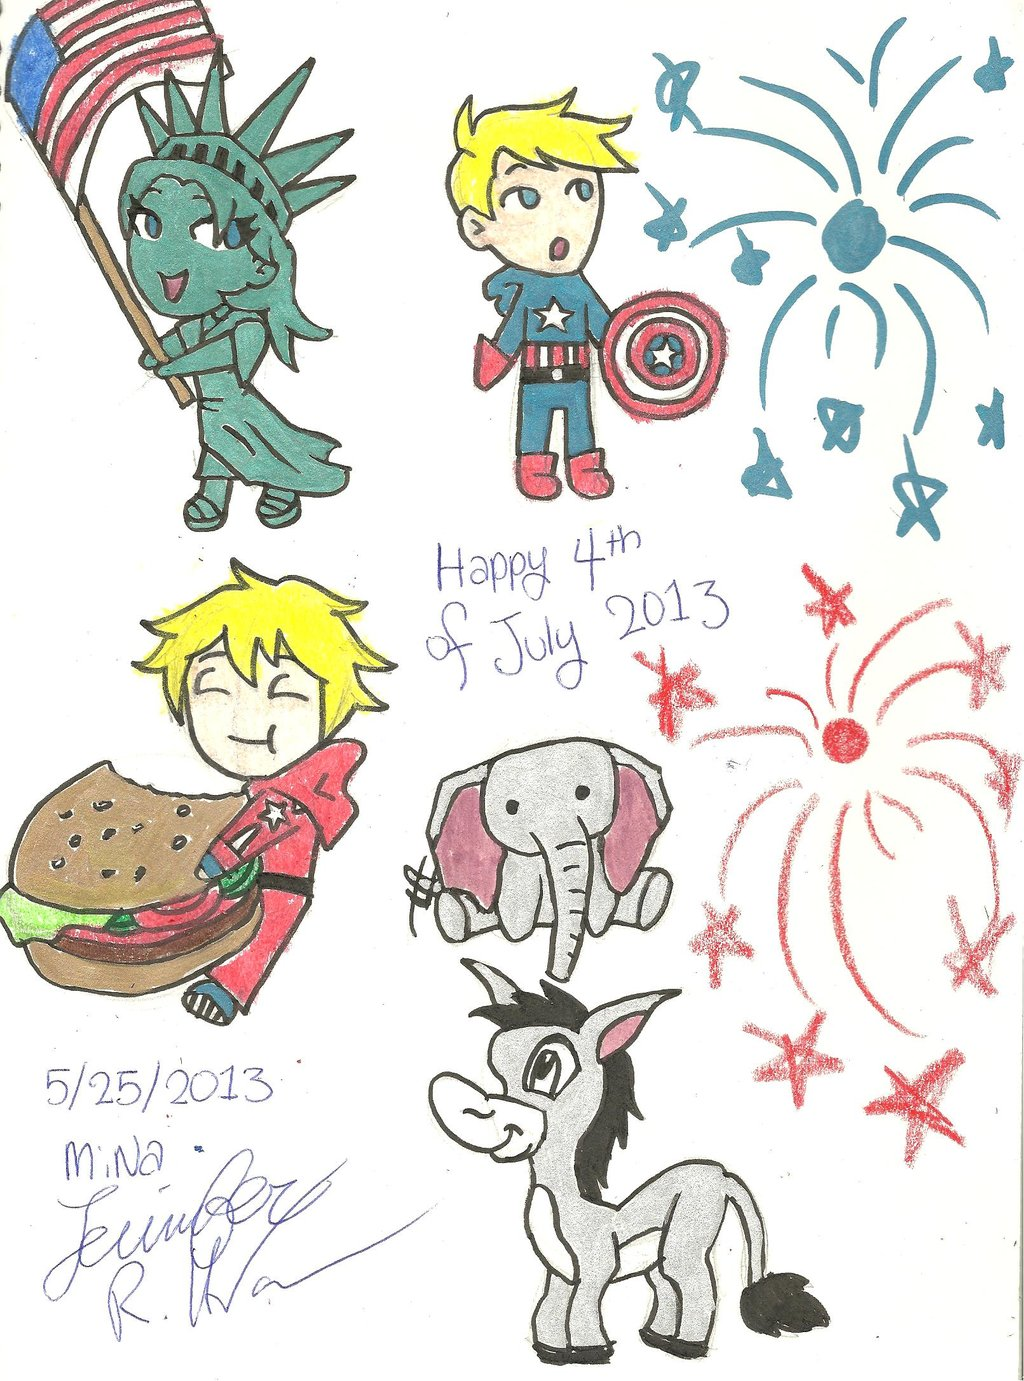 Declaration of independence clipart independance. Drawing at getdrawings com